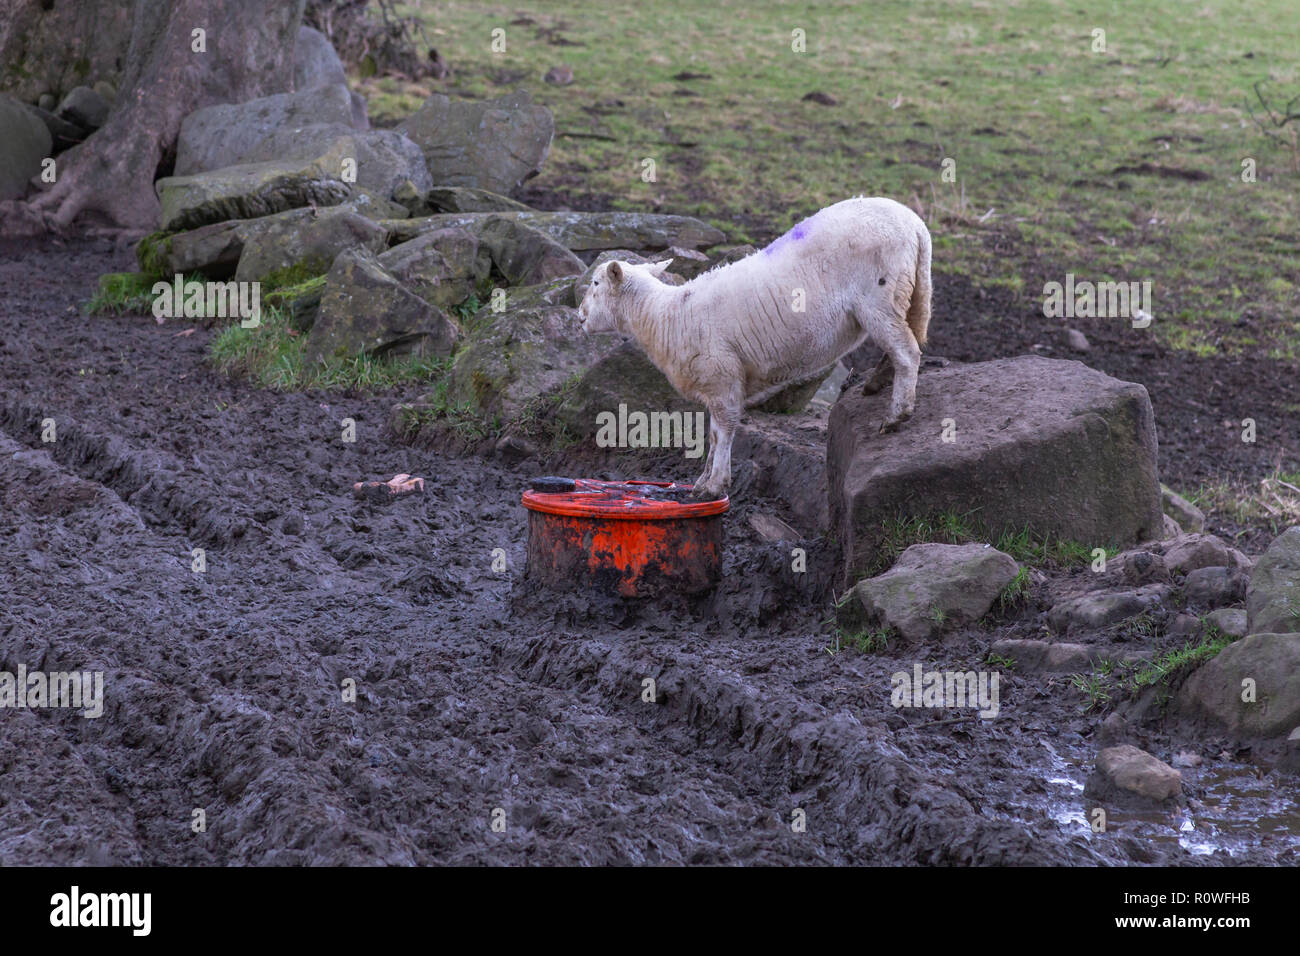 A single sheep in winter drinking liquid nutrient. - Stock Image